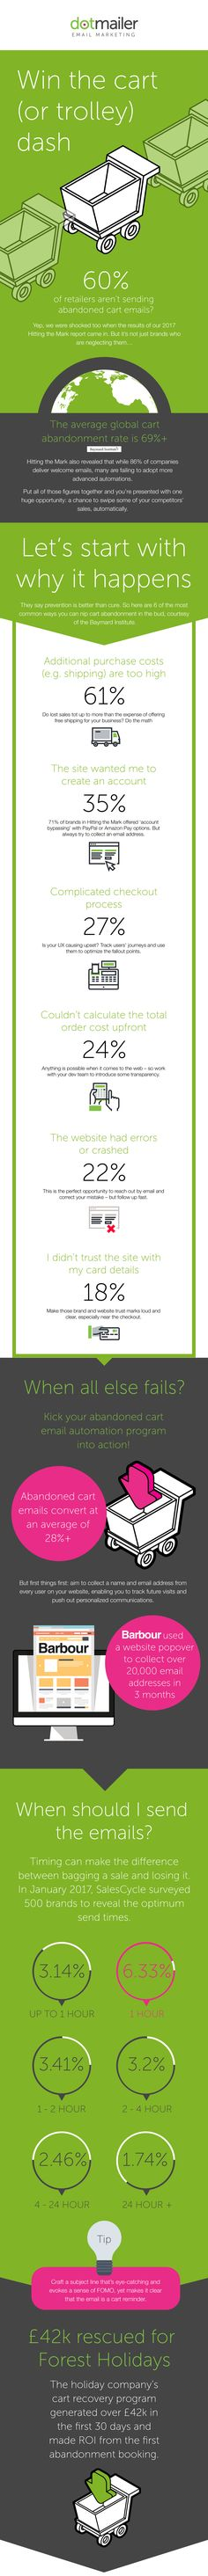 Infographic: Win the cart (or trolley) dash | dotmailer